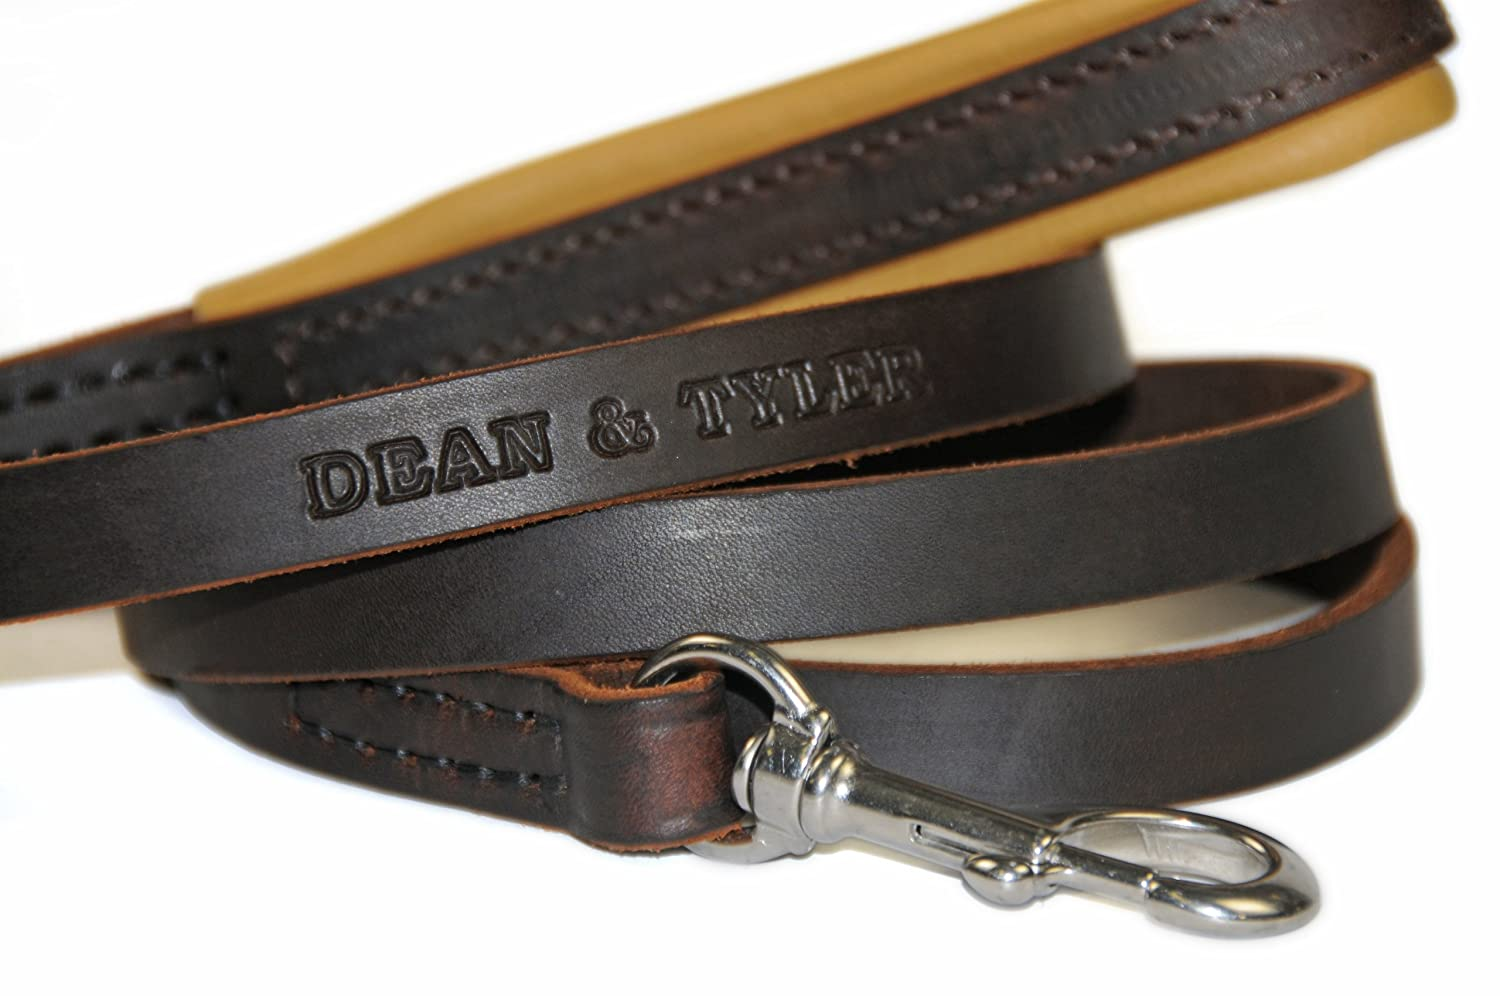 Dean and Tyler Soft Touch Dog Leash, Brown 2-Feet by 3 4-Inch Width With Brown Padded Handle and Stainless Steel Snap Hook.